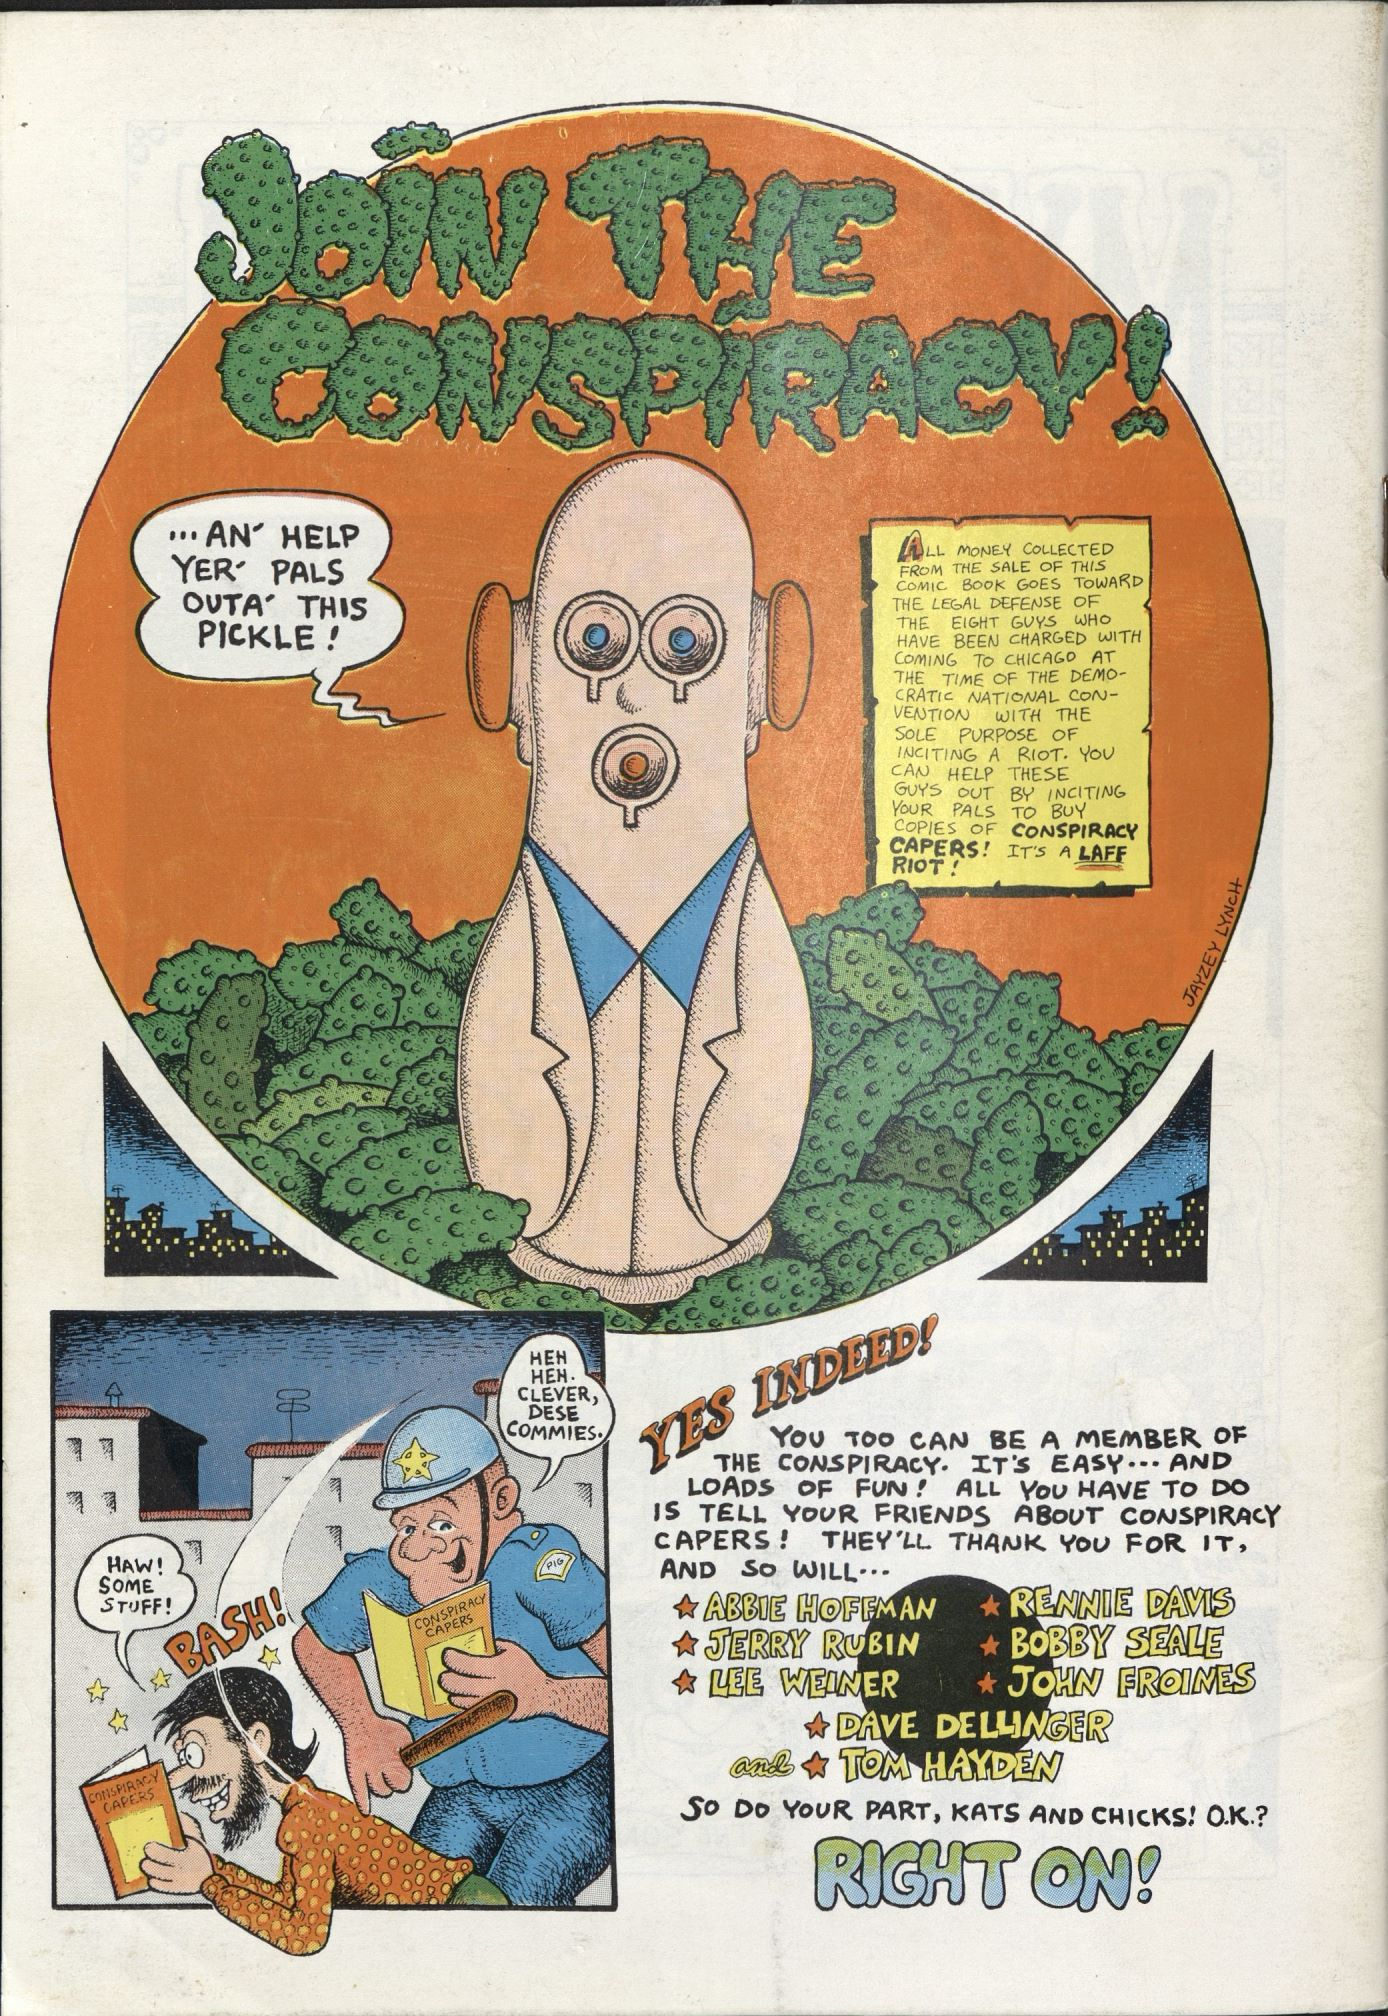 Conspiracy Capers/Join the Conspiracy